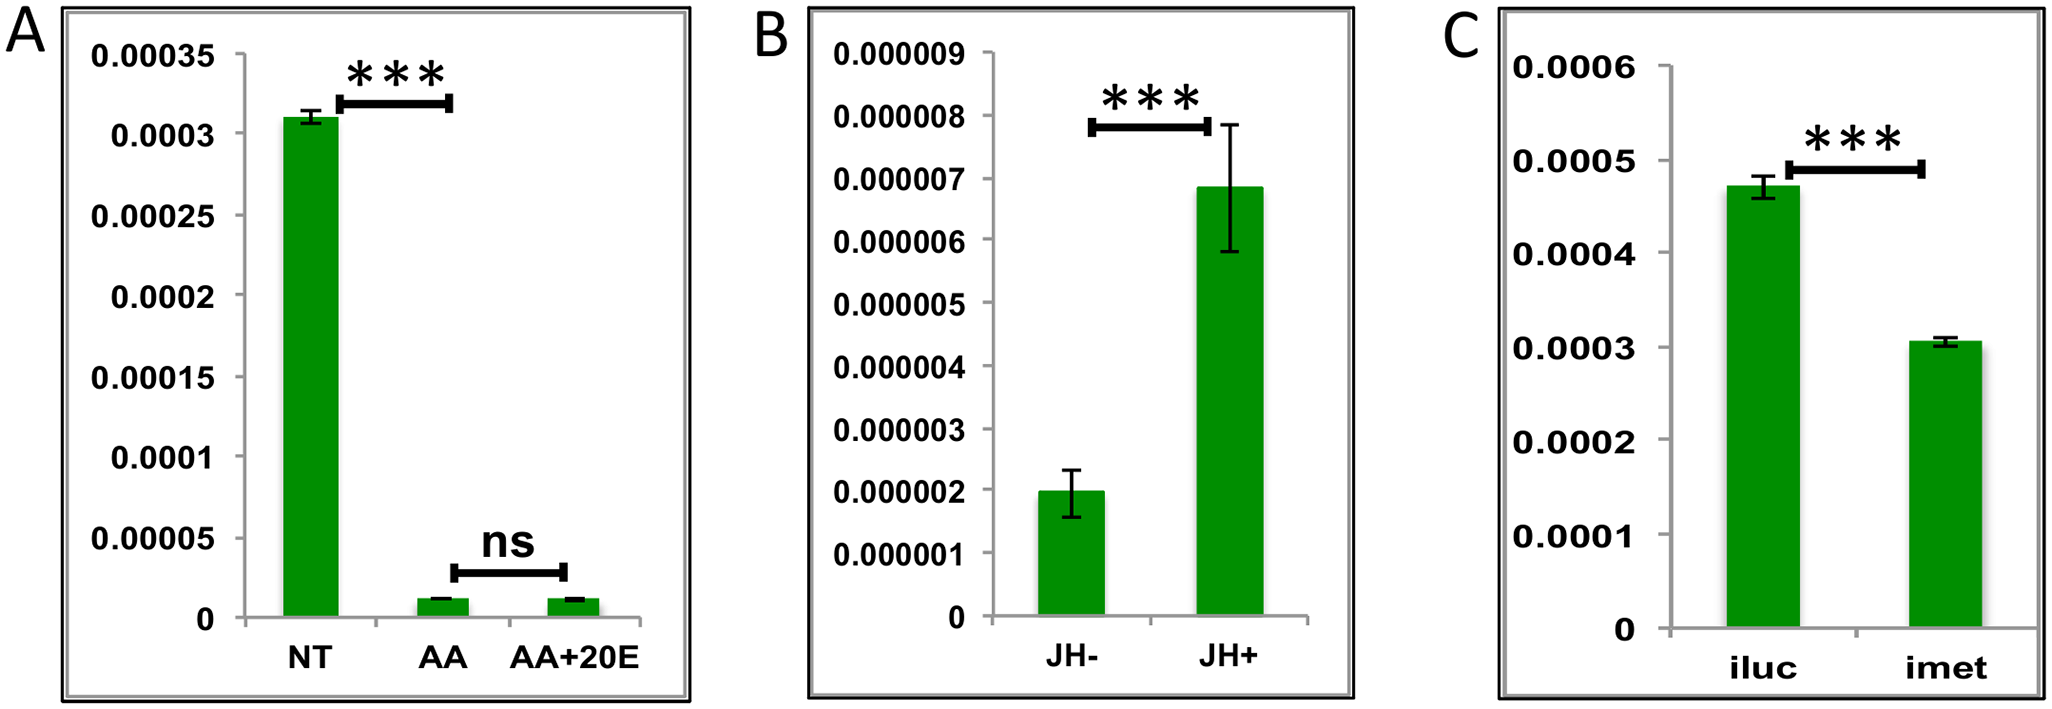 Effects of AAs, 20E and JH on representative LGs.